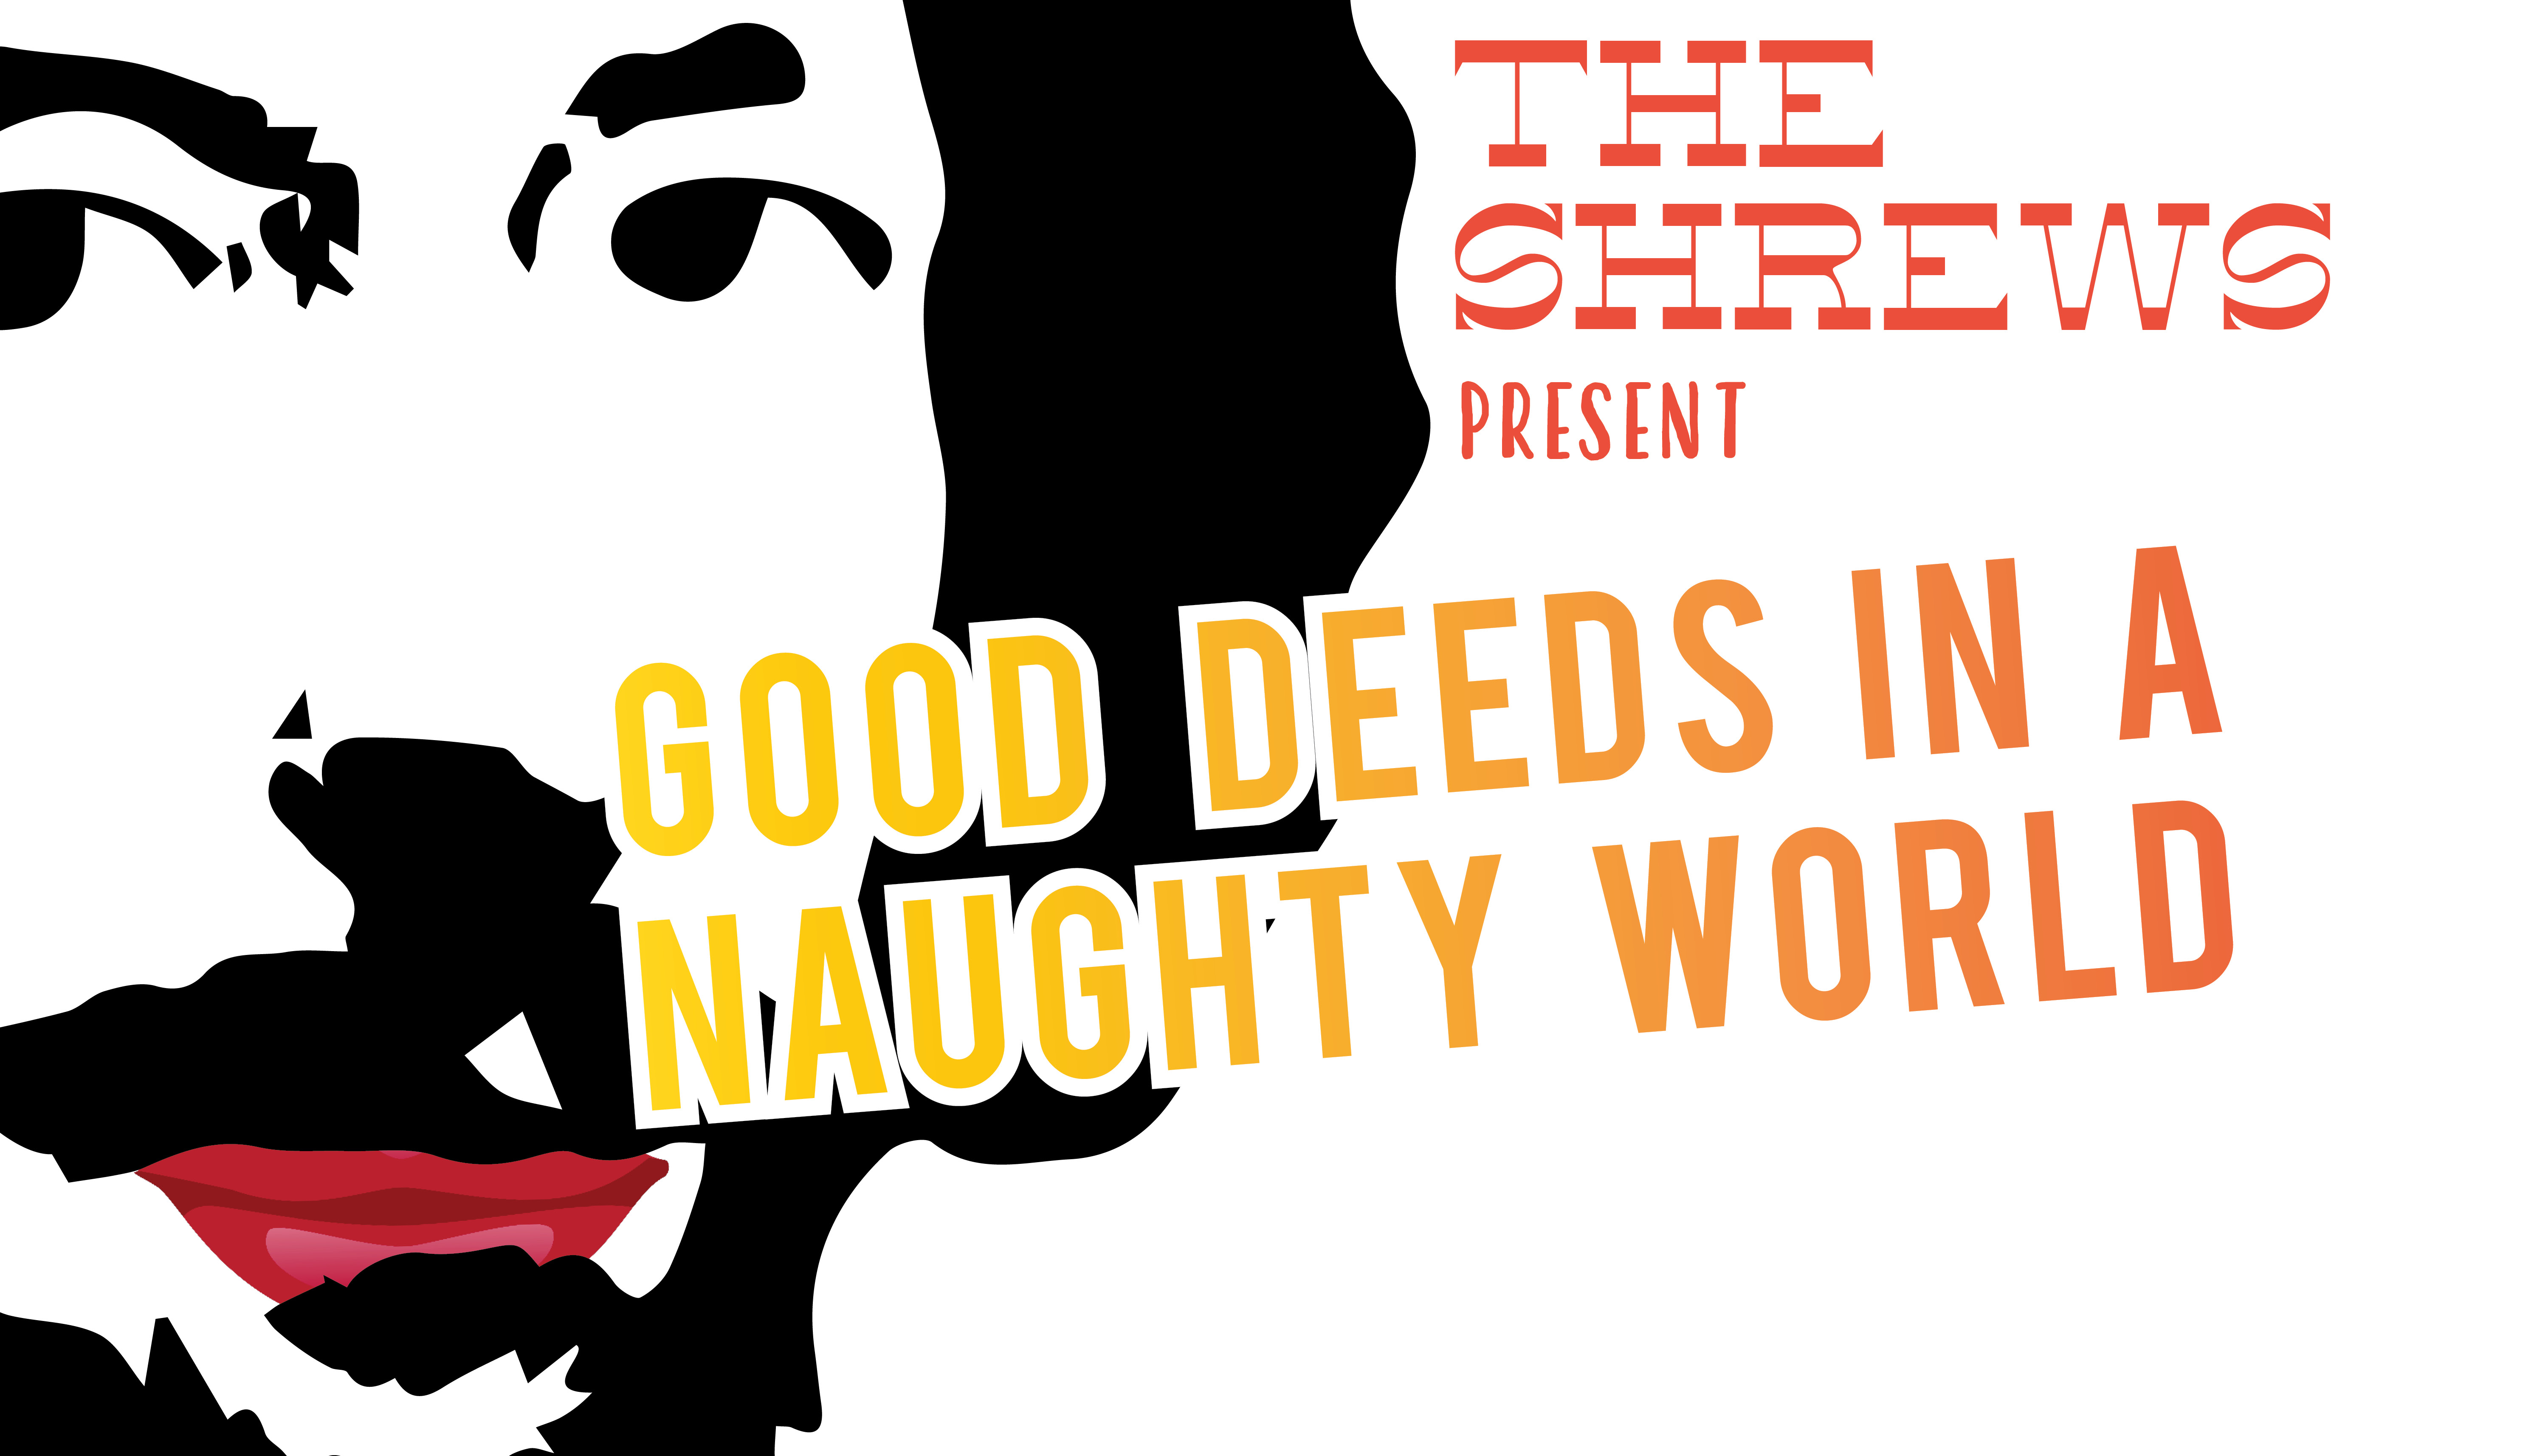 The Shrews Present: Good Deeds in a Naughty World